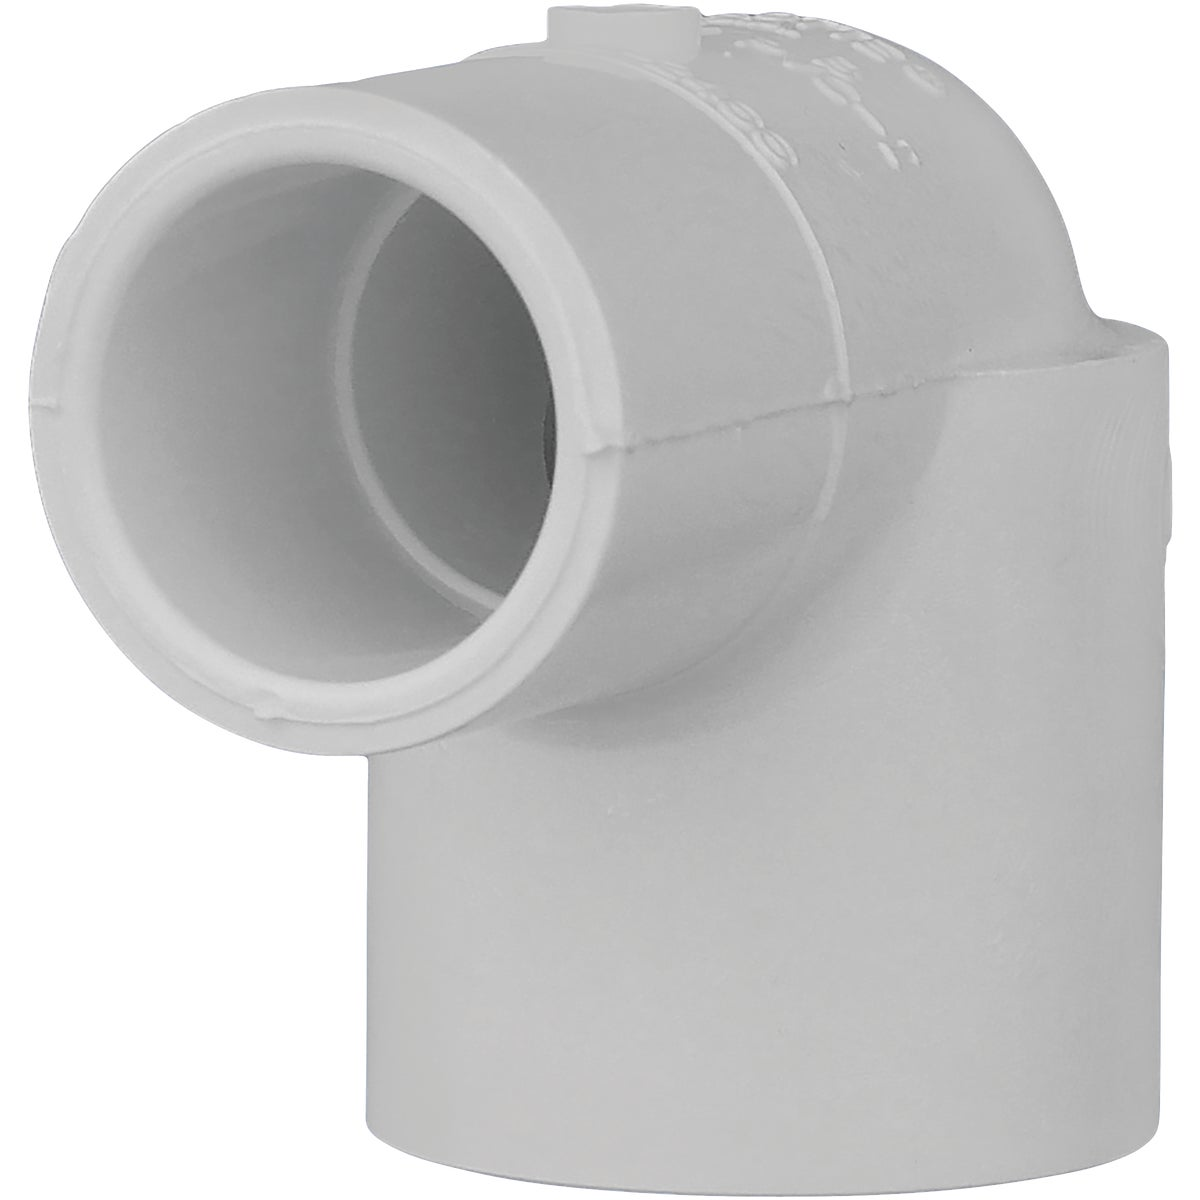 "3/4"" SXSP 90D STRT ELBOW - 32907 by Genova Inc"